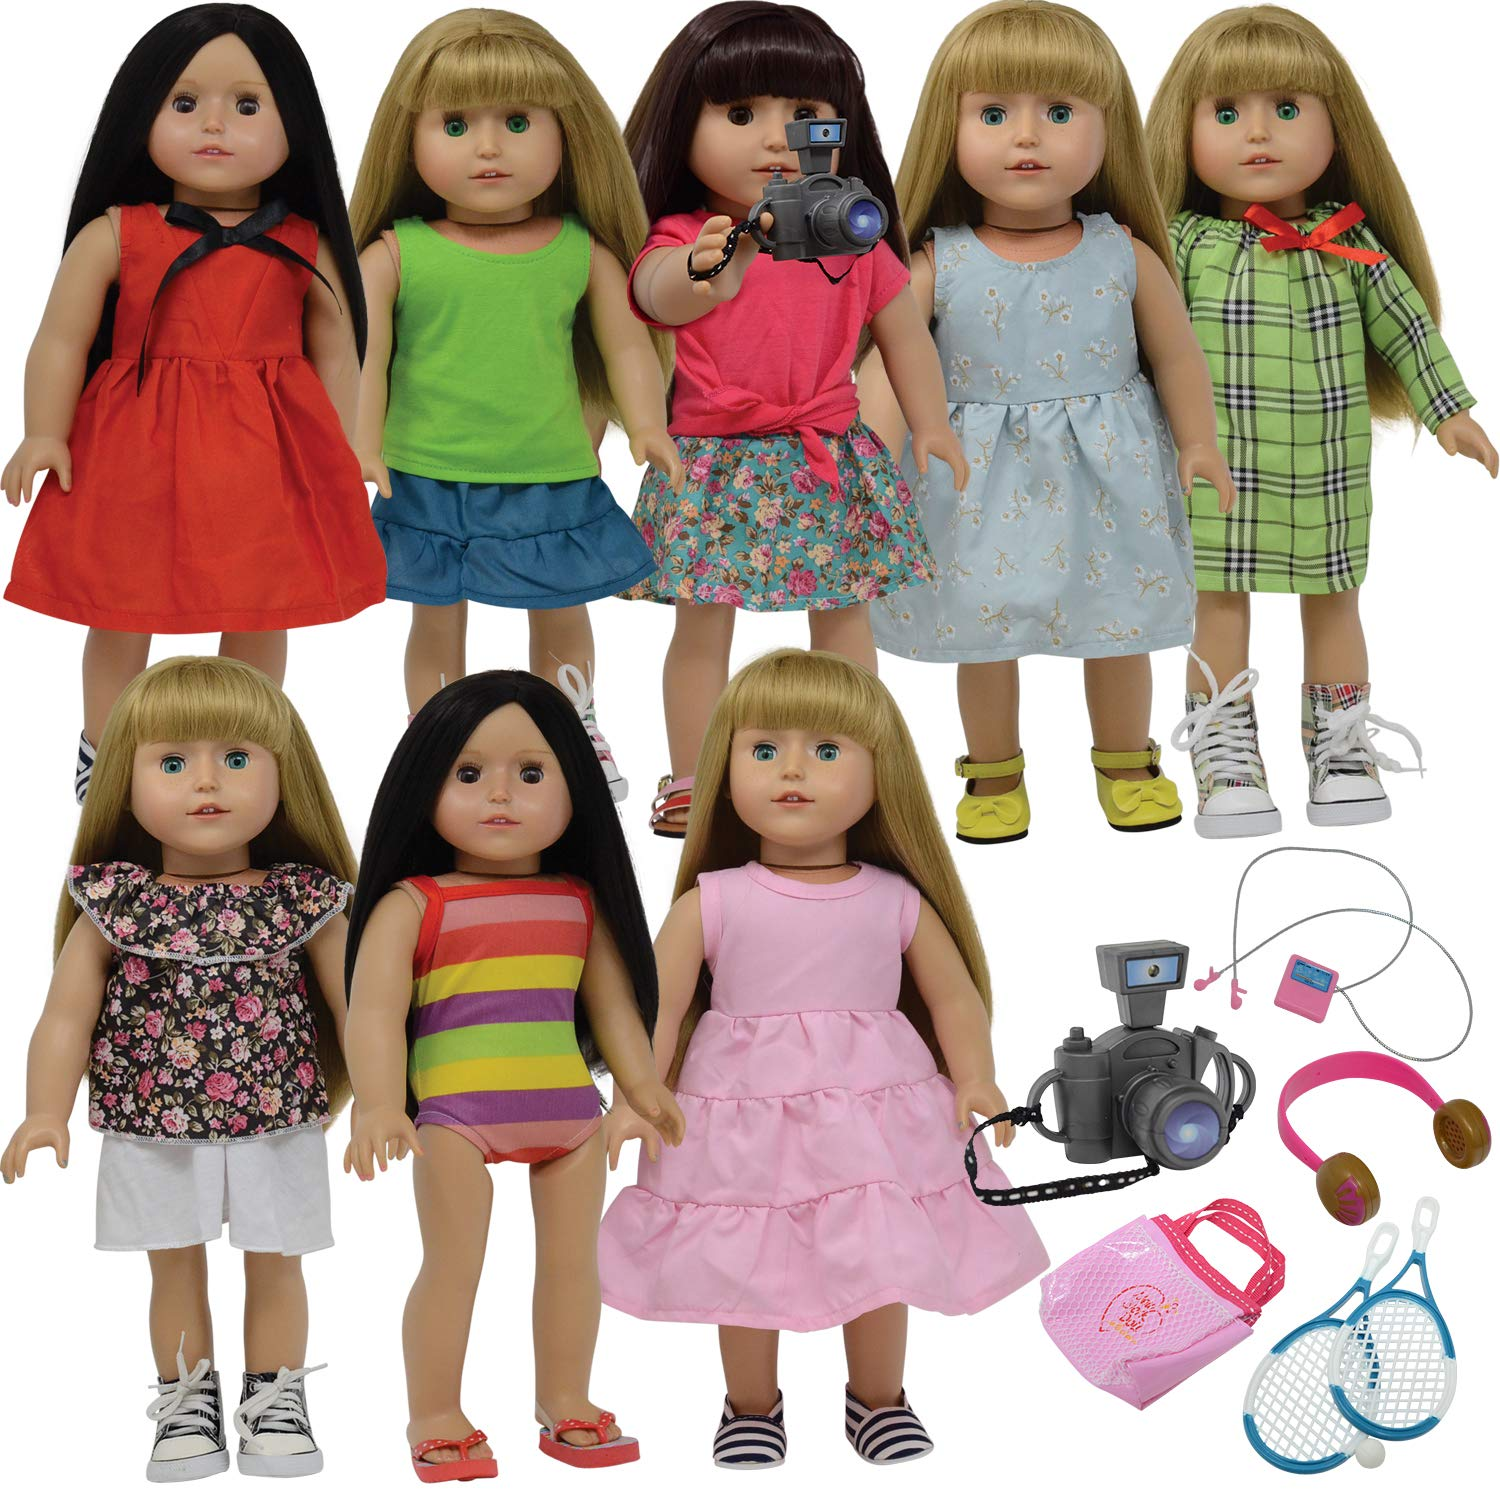 19 pcs Girl Doll Clothes Gift for American 18 inch Doll Clothes and Accessories